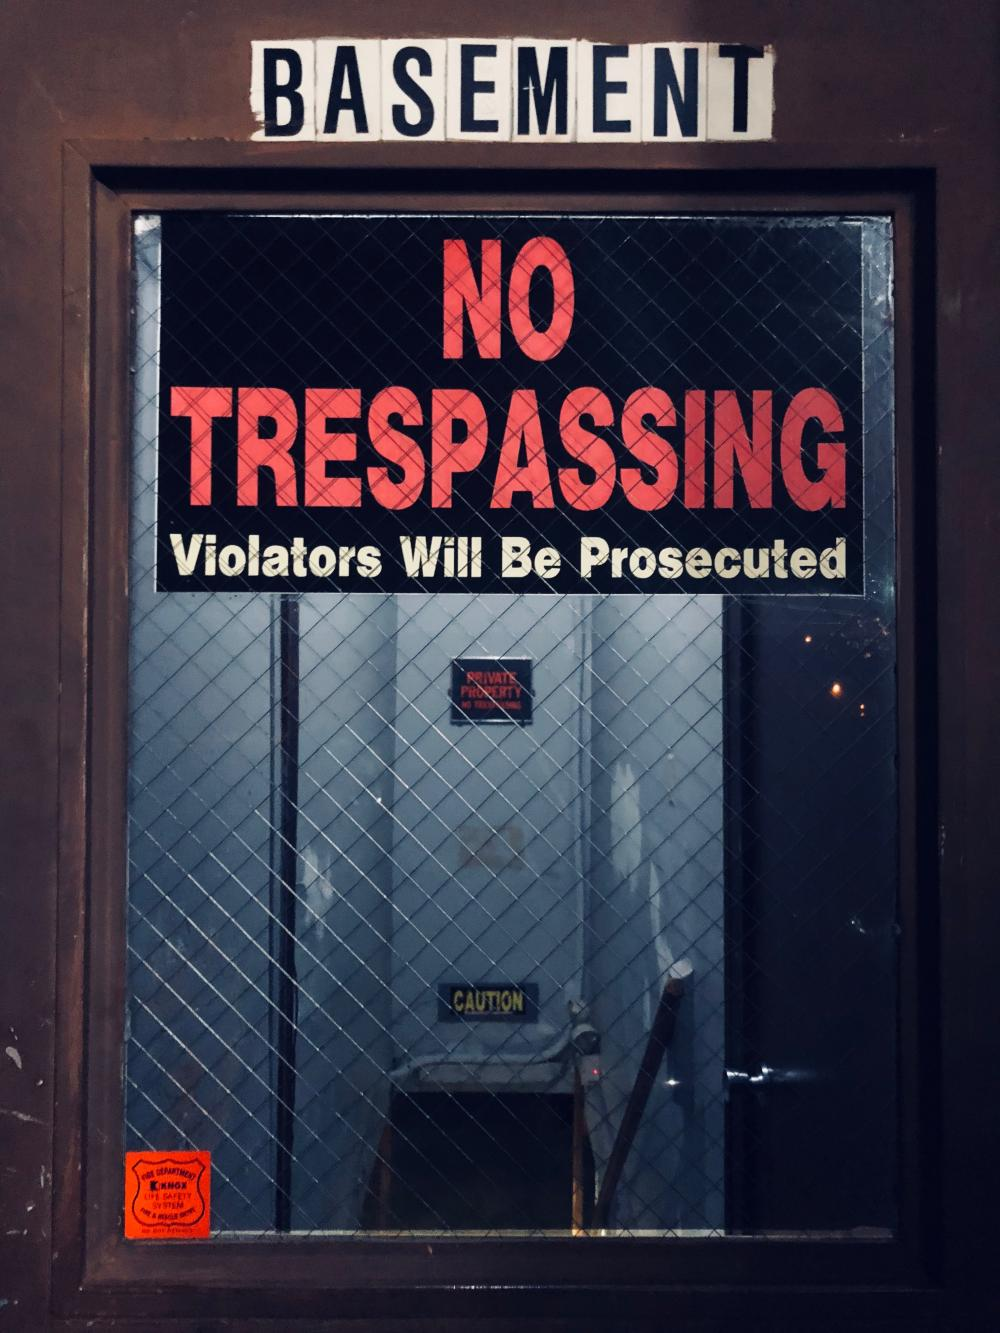 No Trespassing in the basement